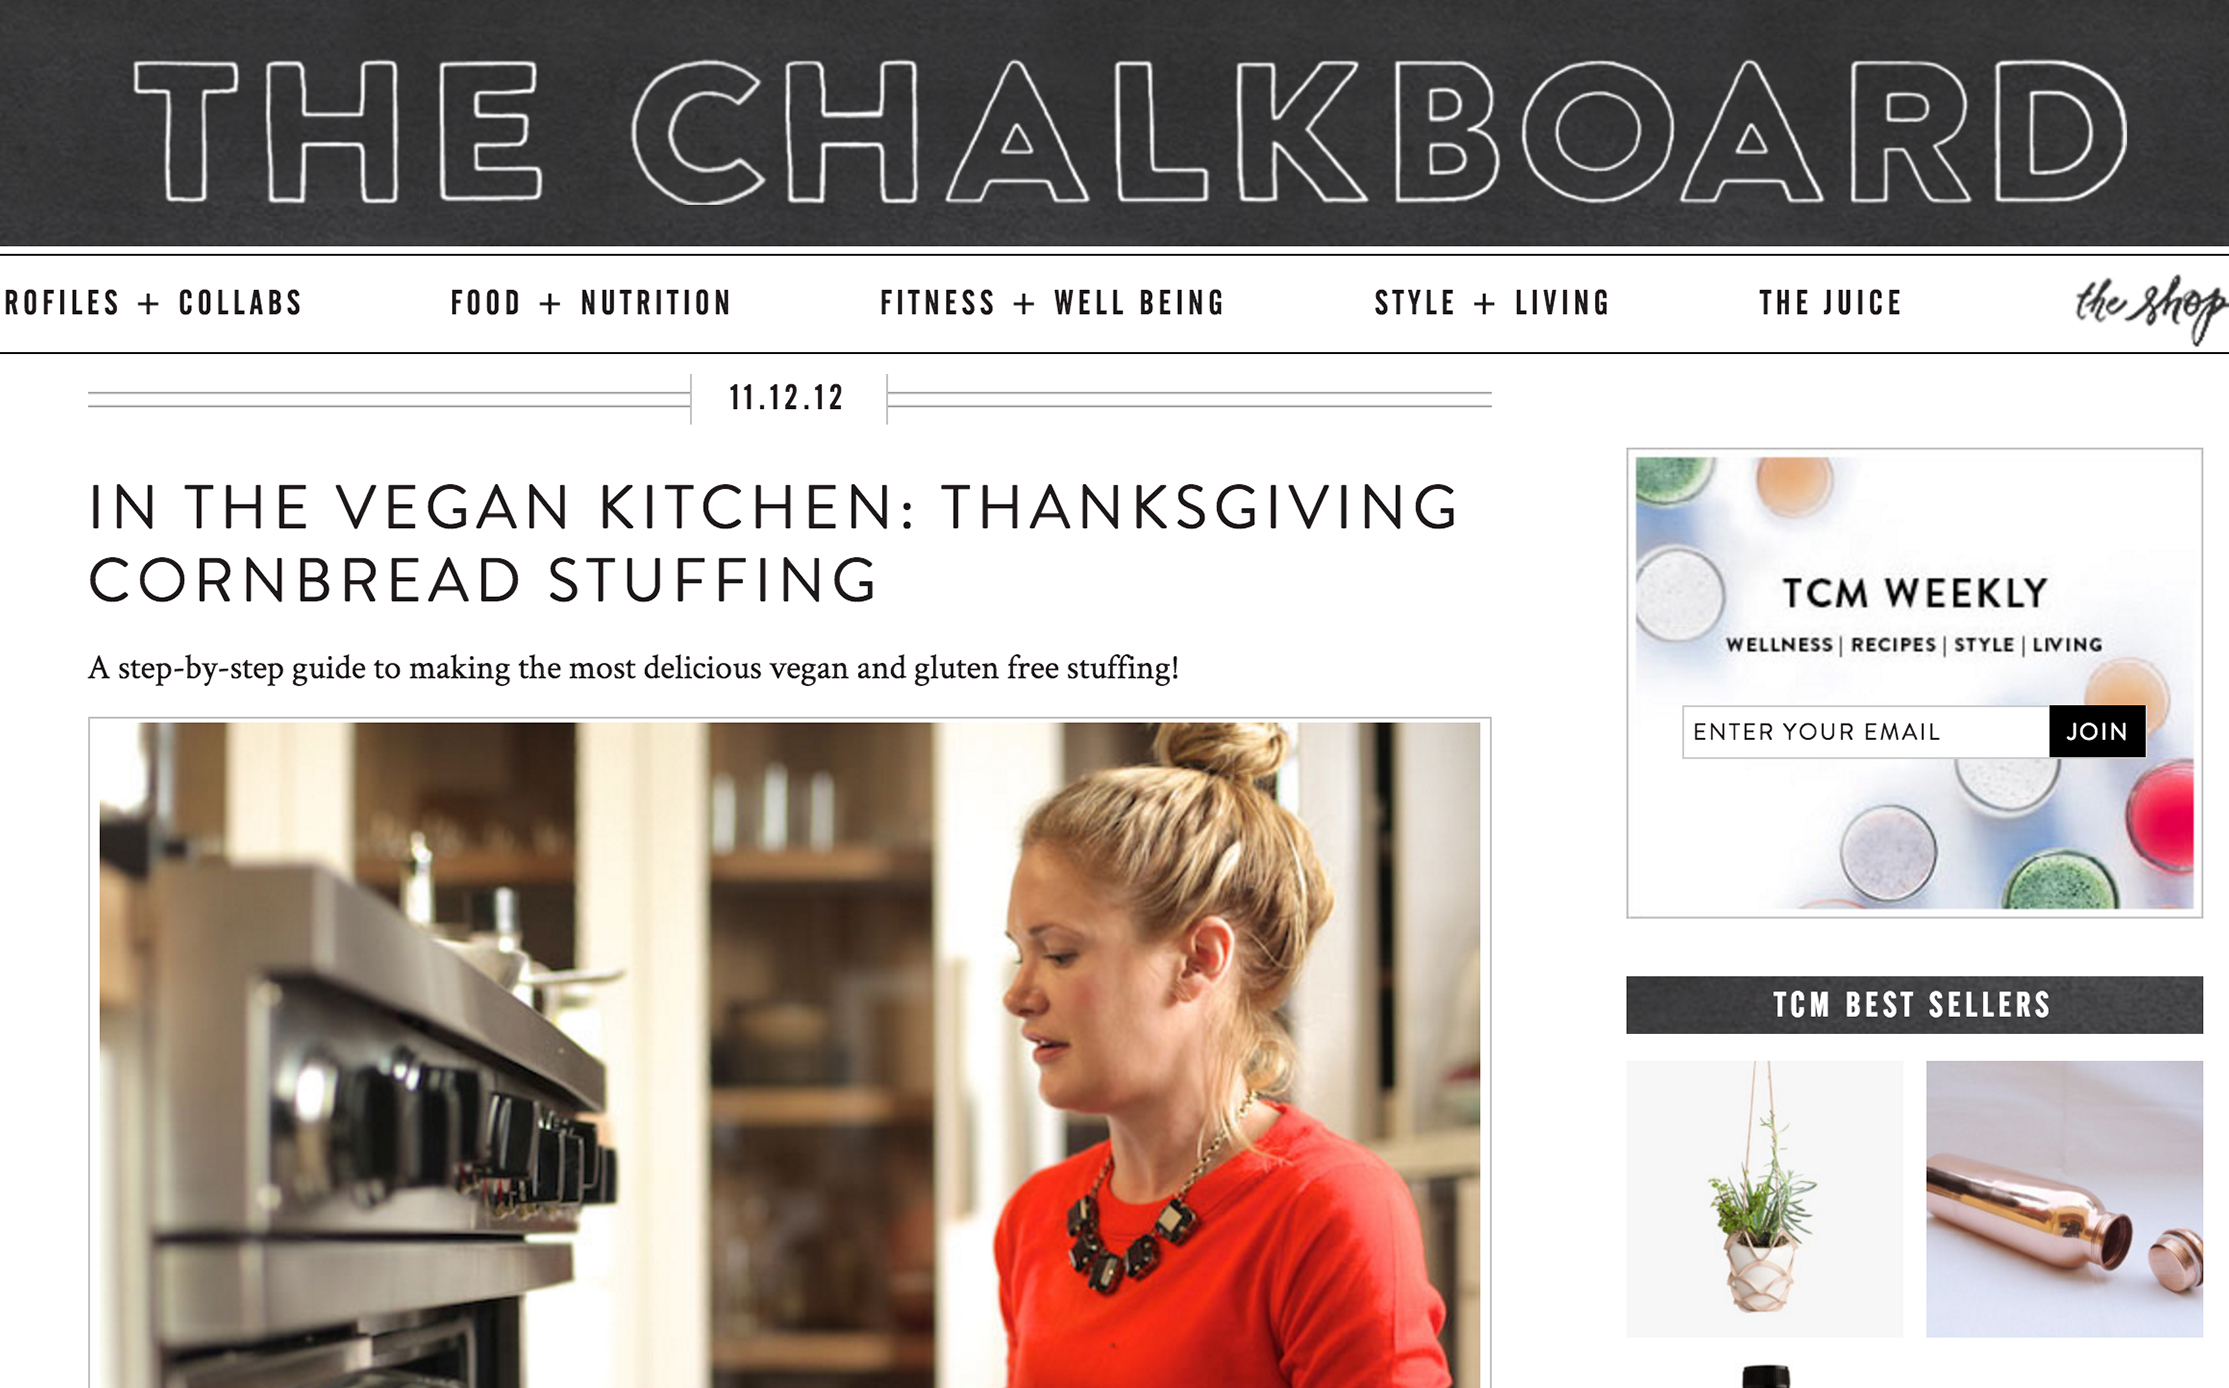 THE CHALKBOARD MAG //   A Vegan Thanksgiving featuring annie campbell